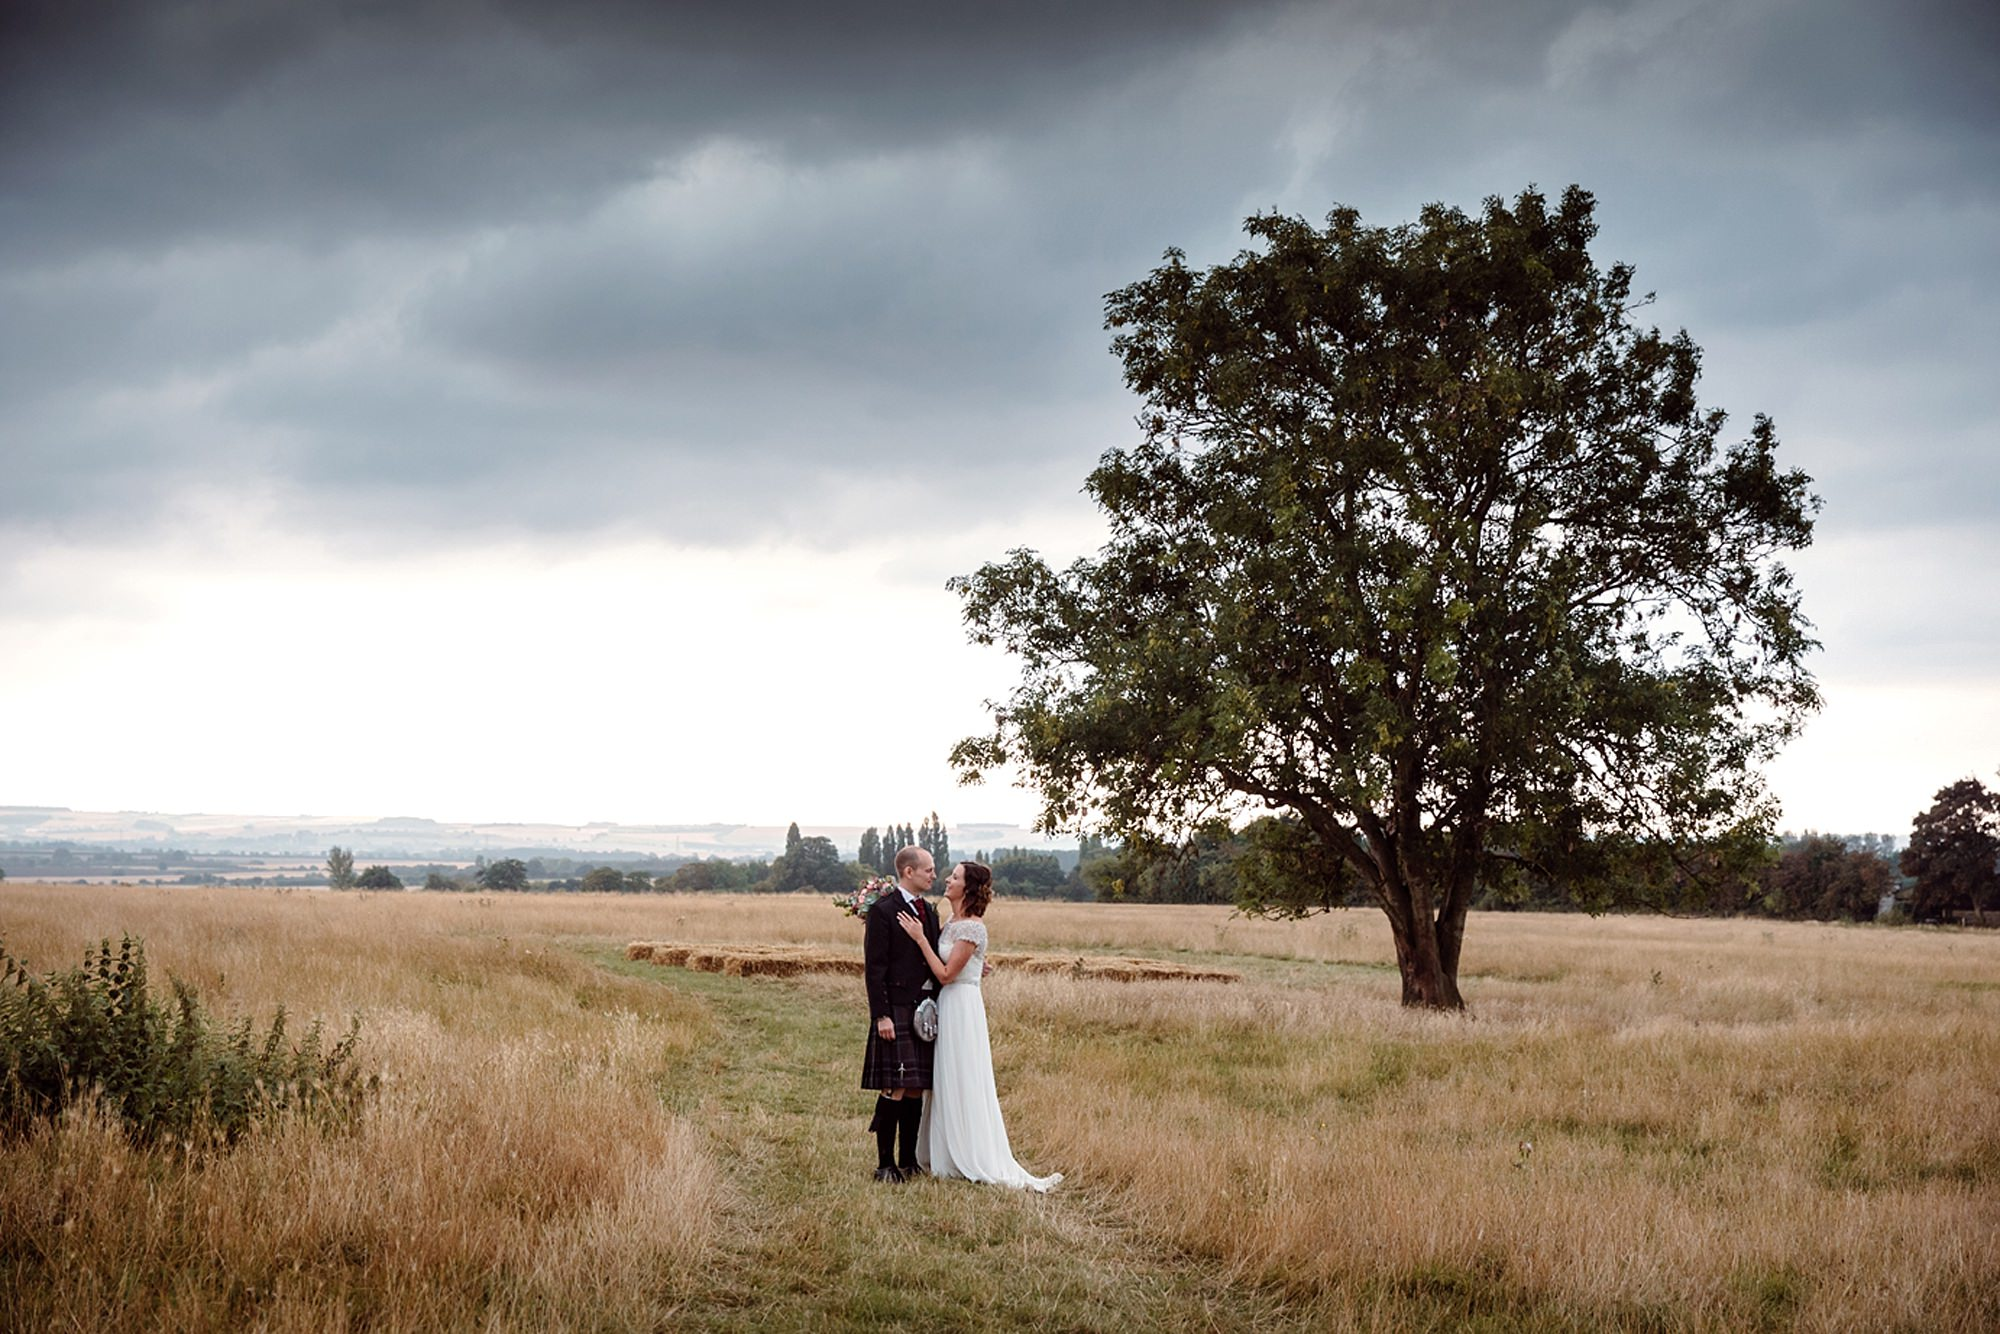 outdoor humanist wedding photography bride and groom under tree